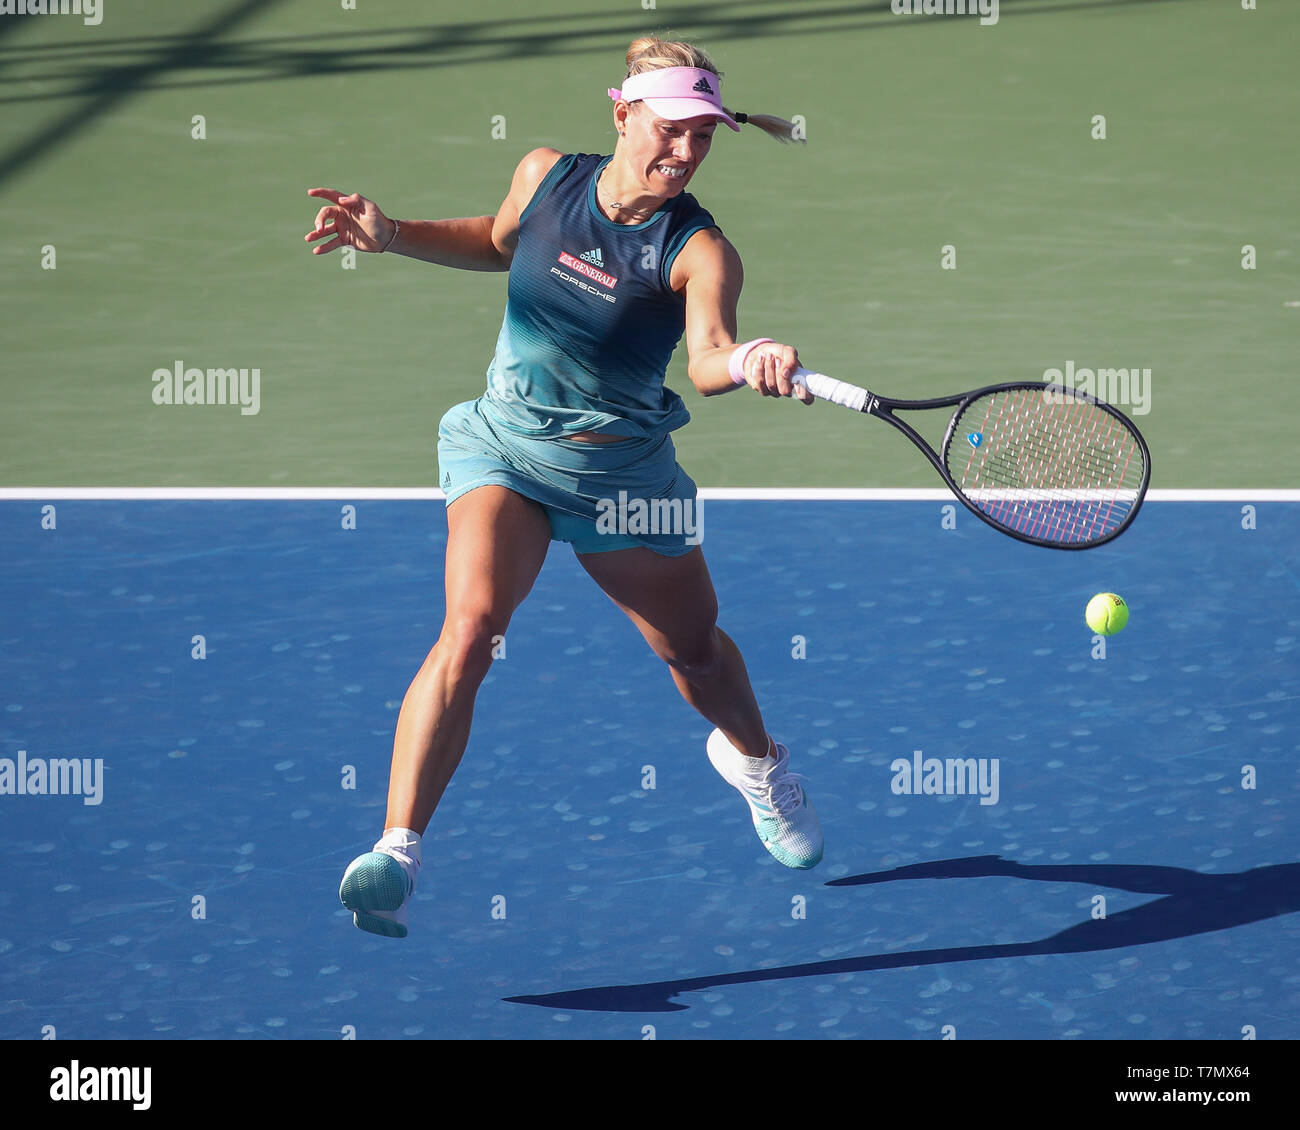 German tennis player Angelique Kerber playing forehand shot during Dubai Tennis Championships 2019, Dubai, United Arab Emirates - Stock Image